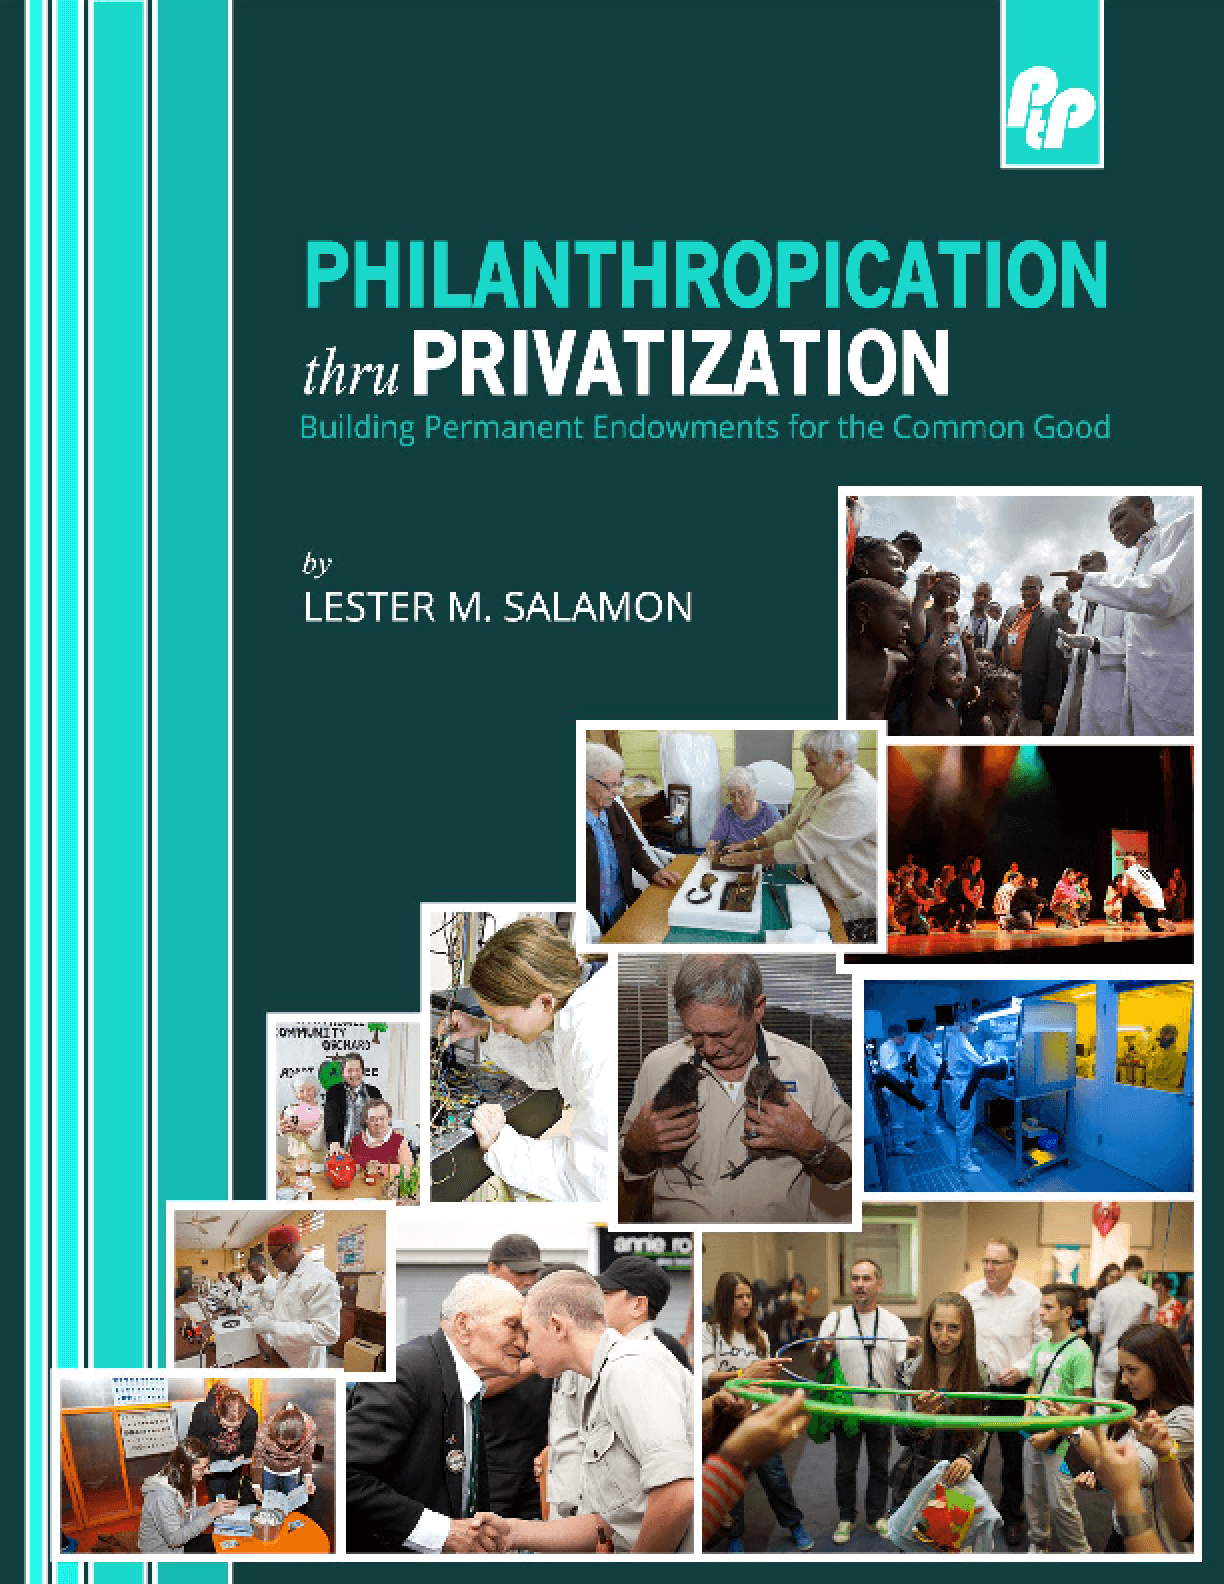 Philanthropication through Privatization: Building Permanent Endowments for the Common Good